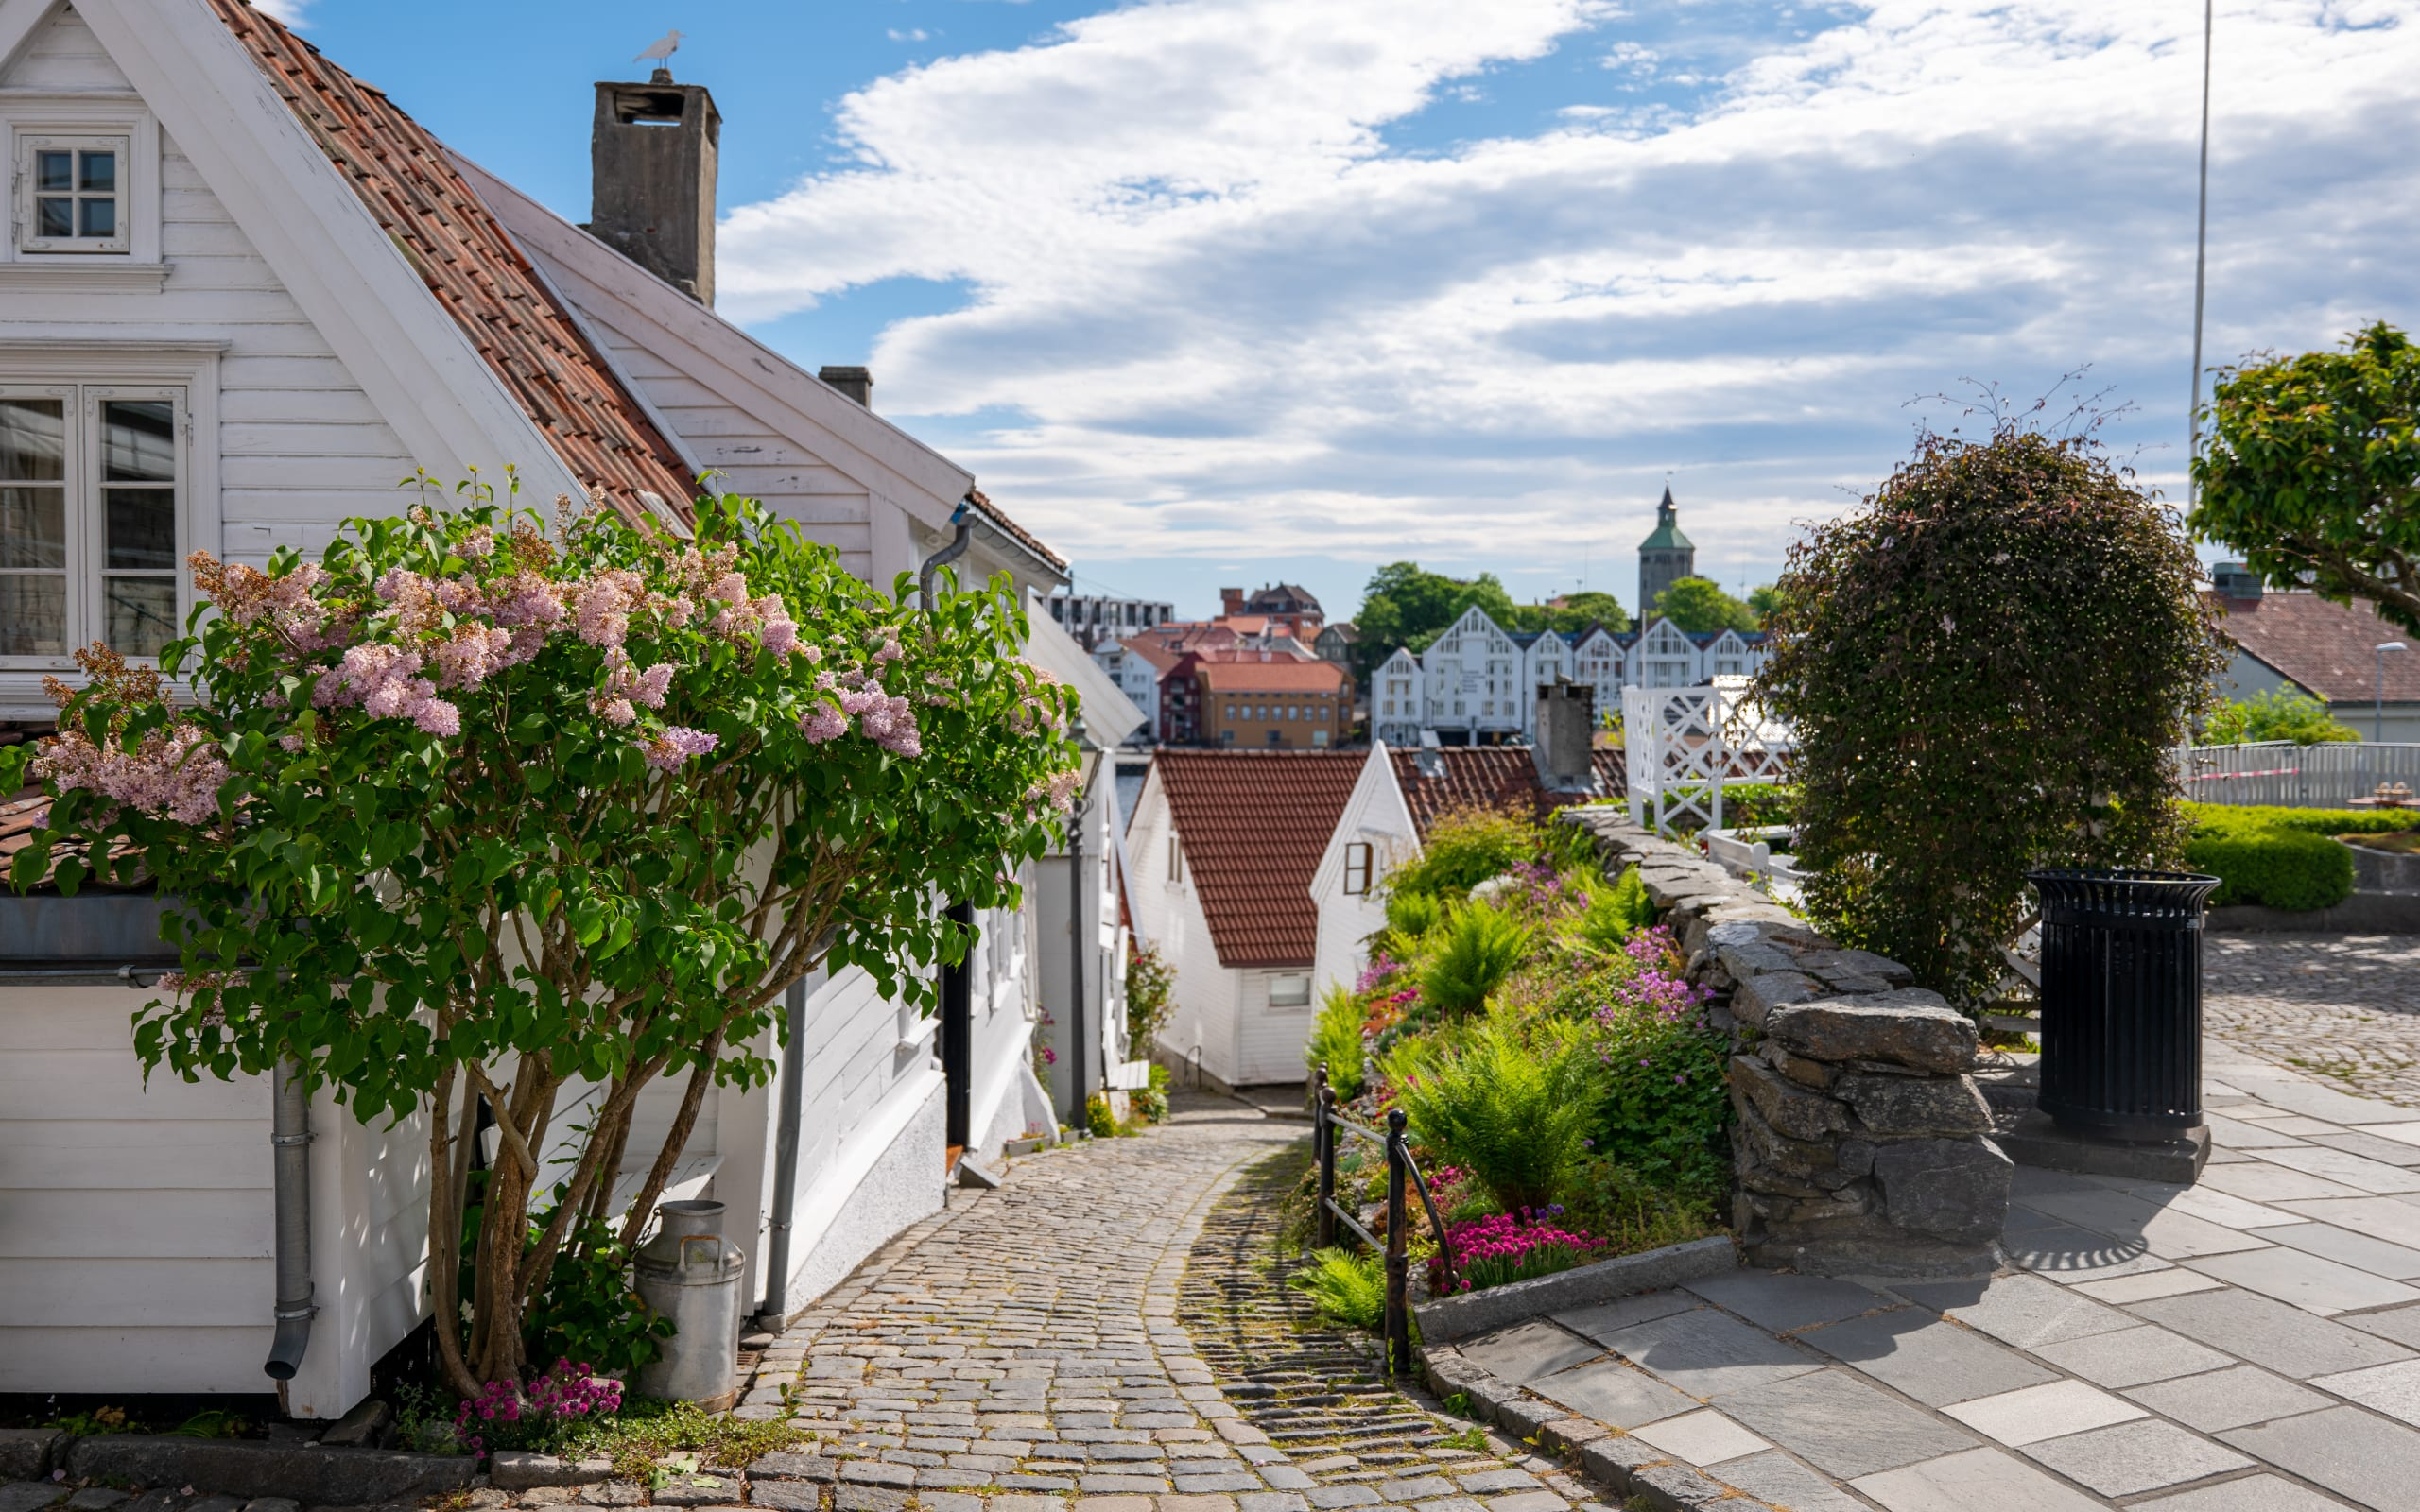 Narrow alley in the old part of Stavanger city